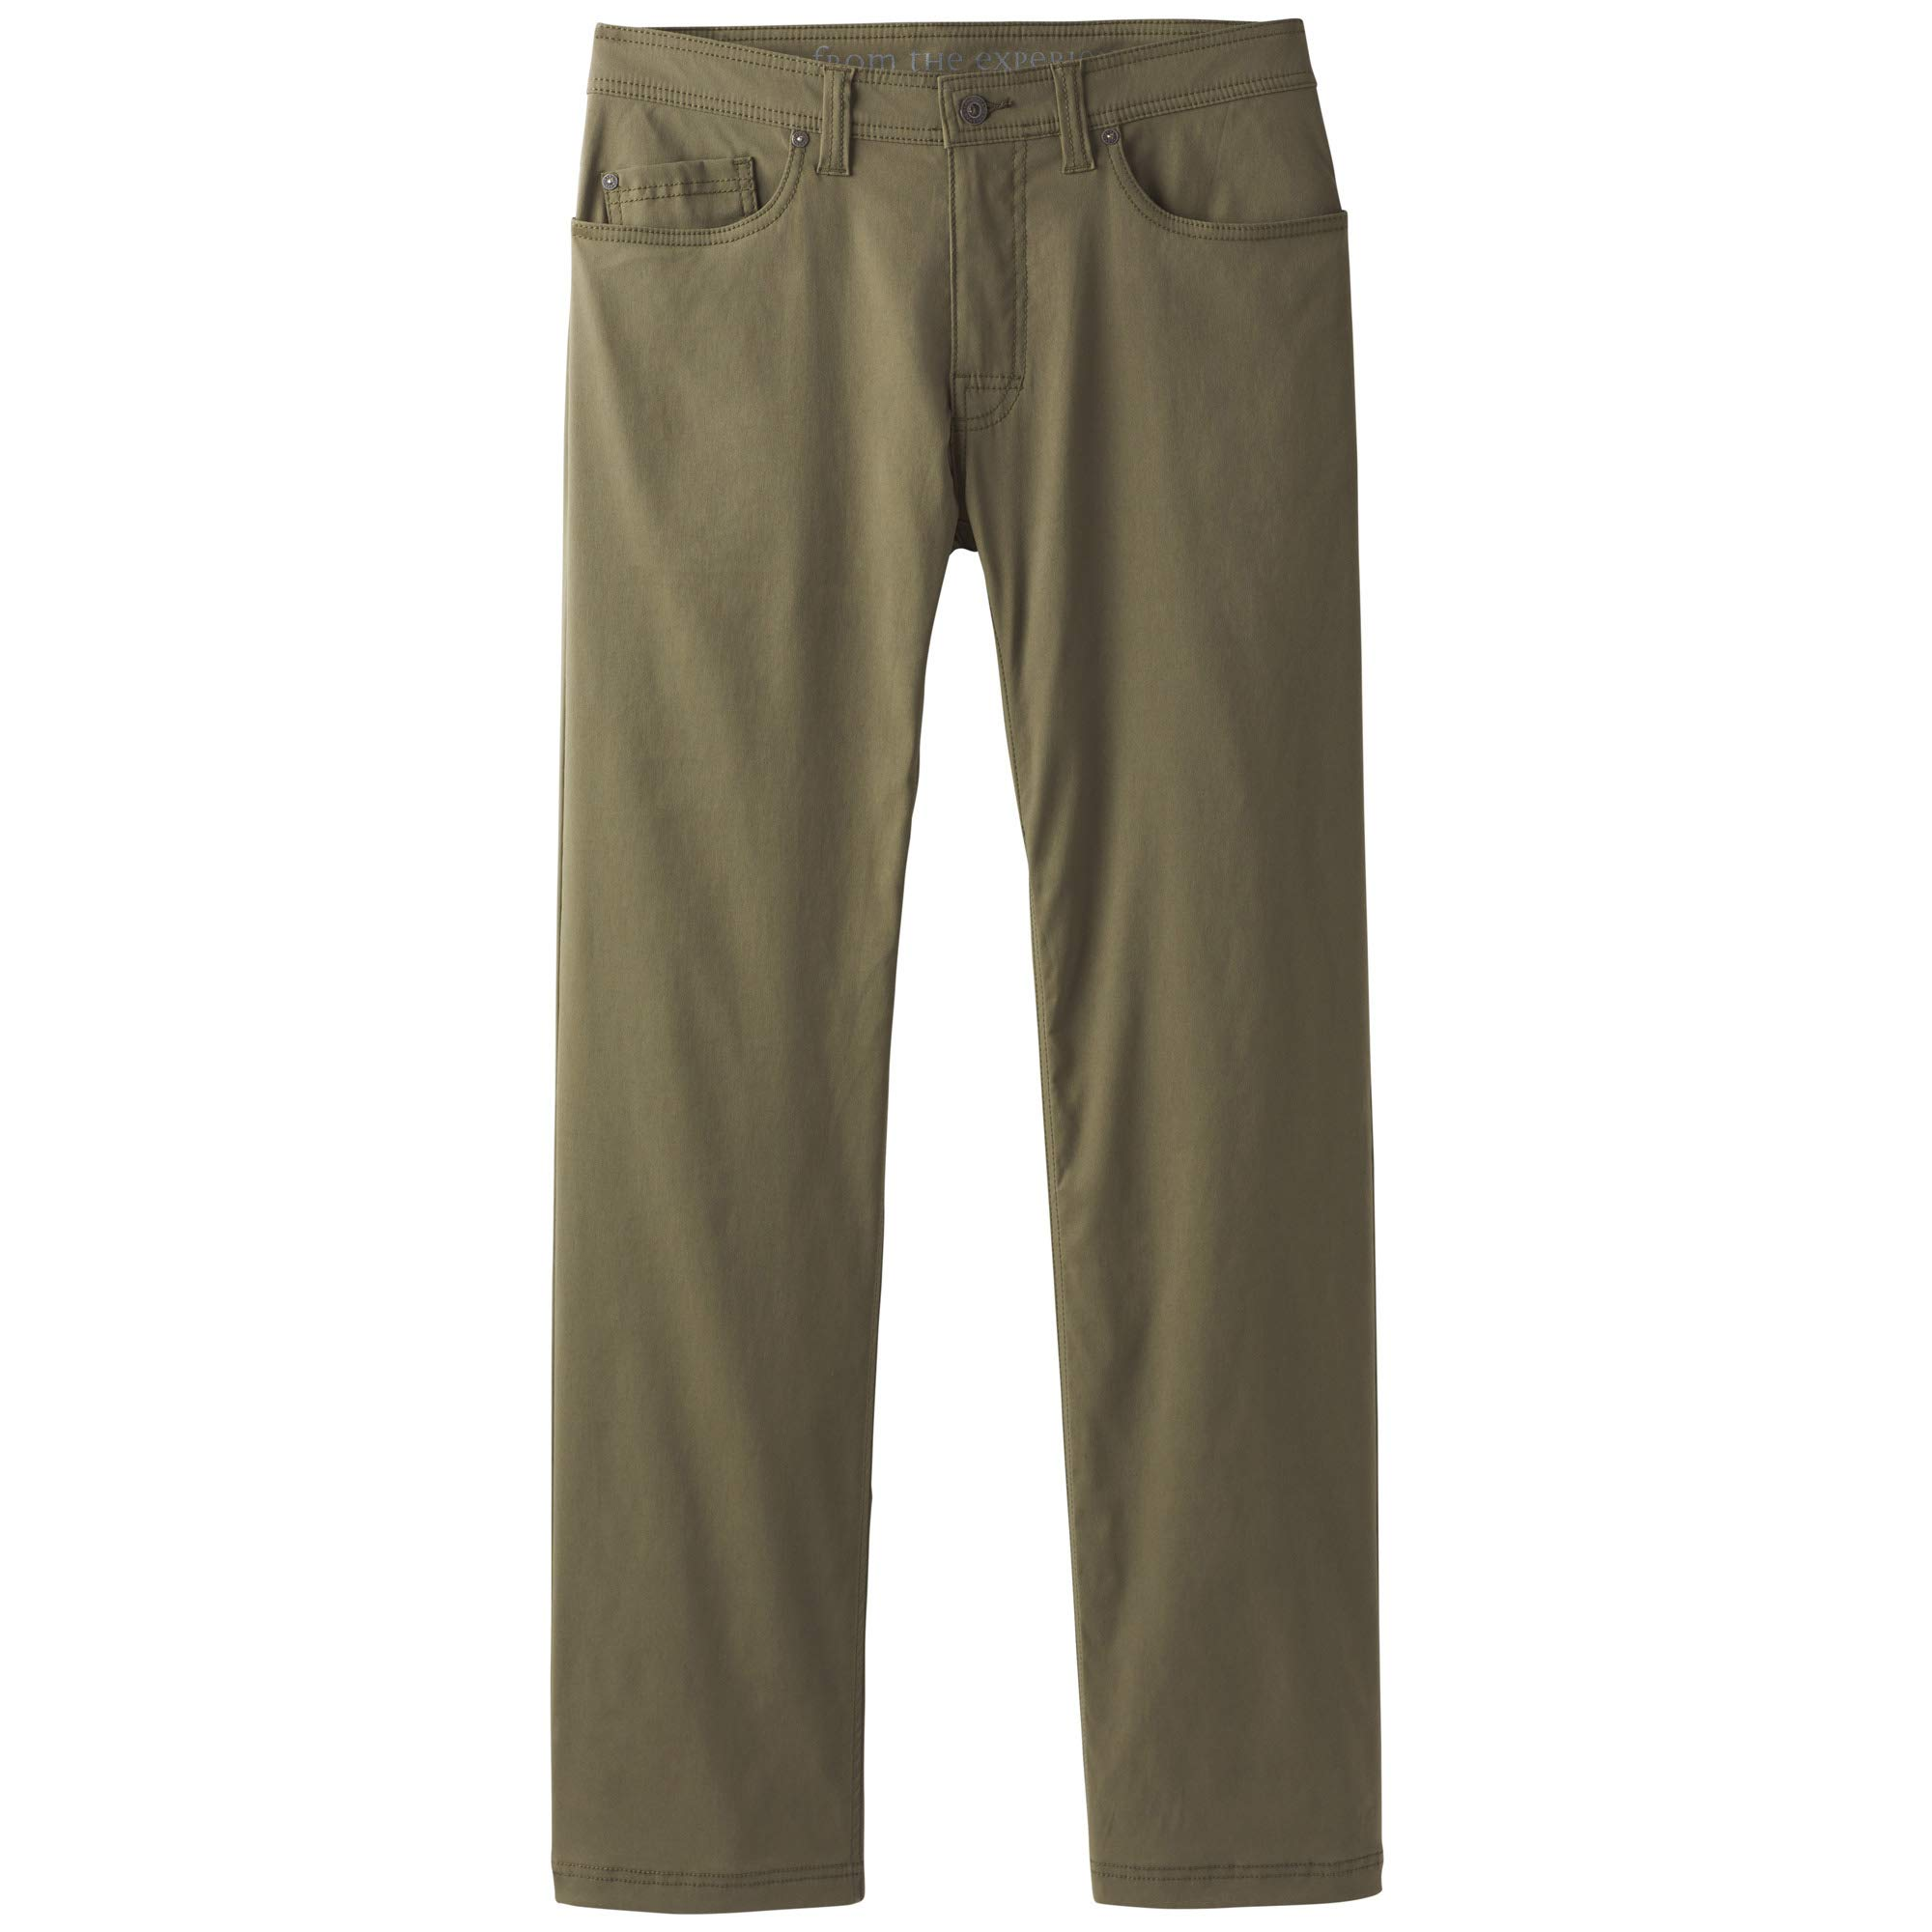 prAna Men's Brion Pant 30'' Inseam, Cargo Green, 28